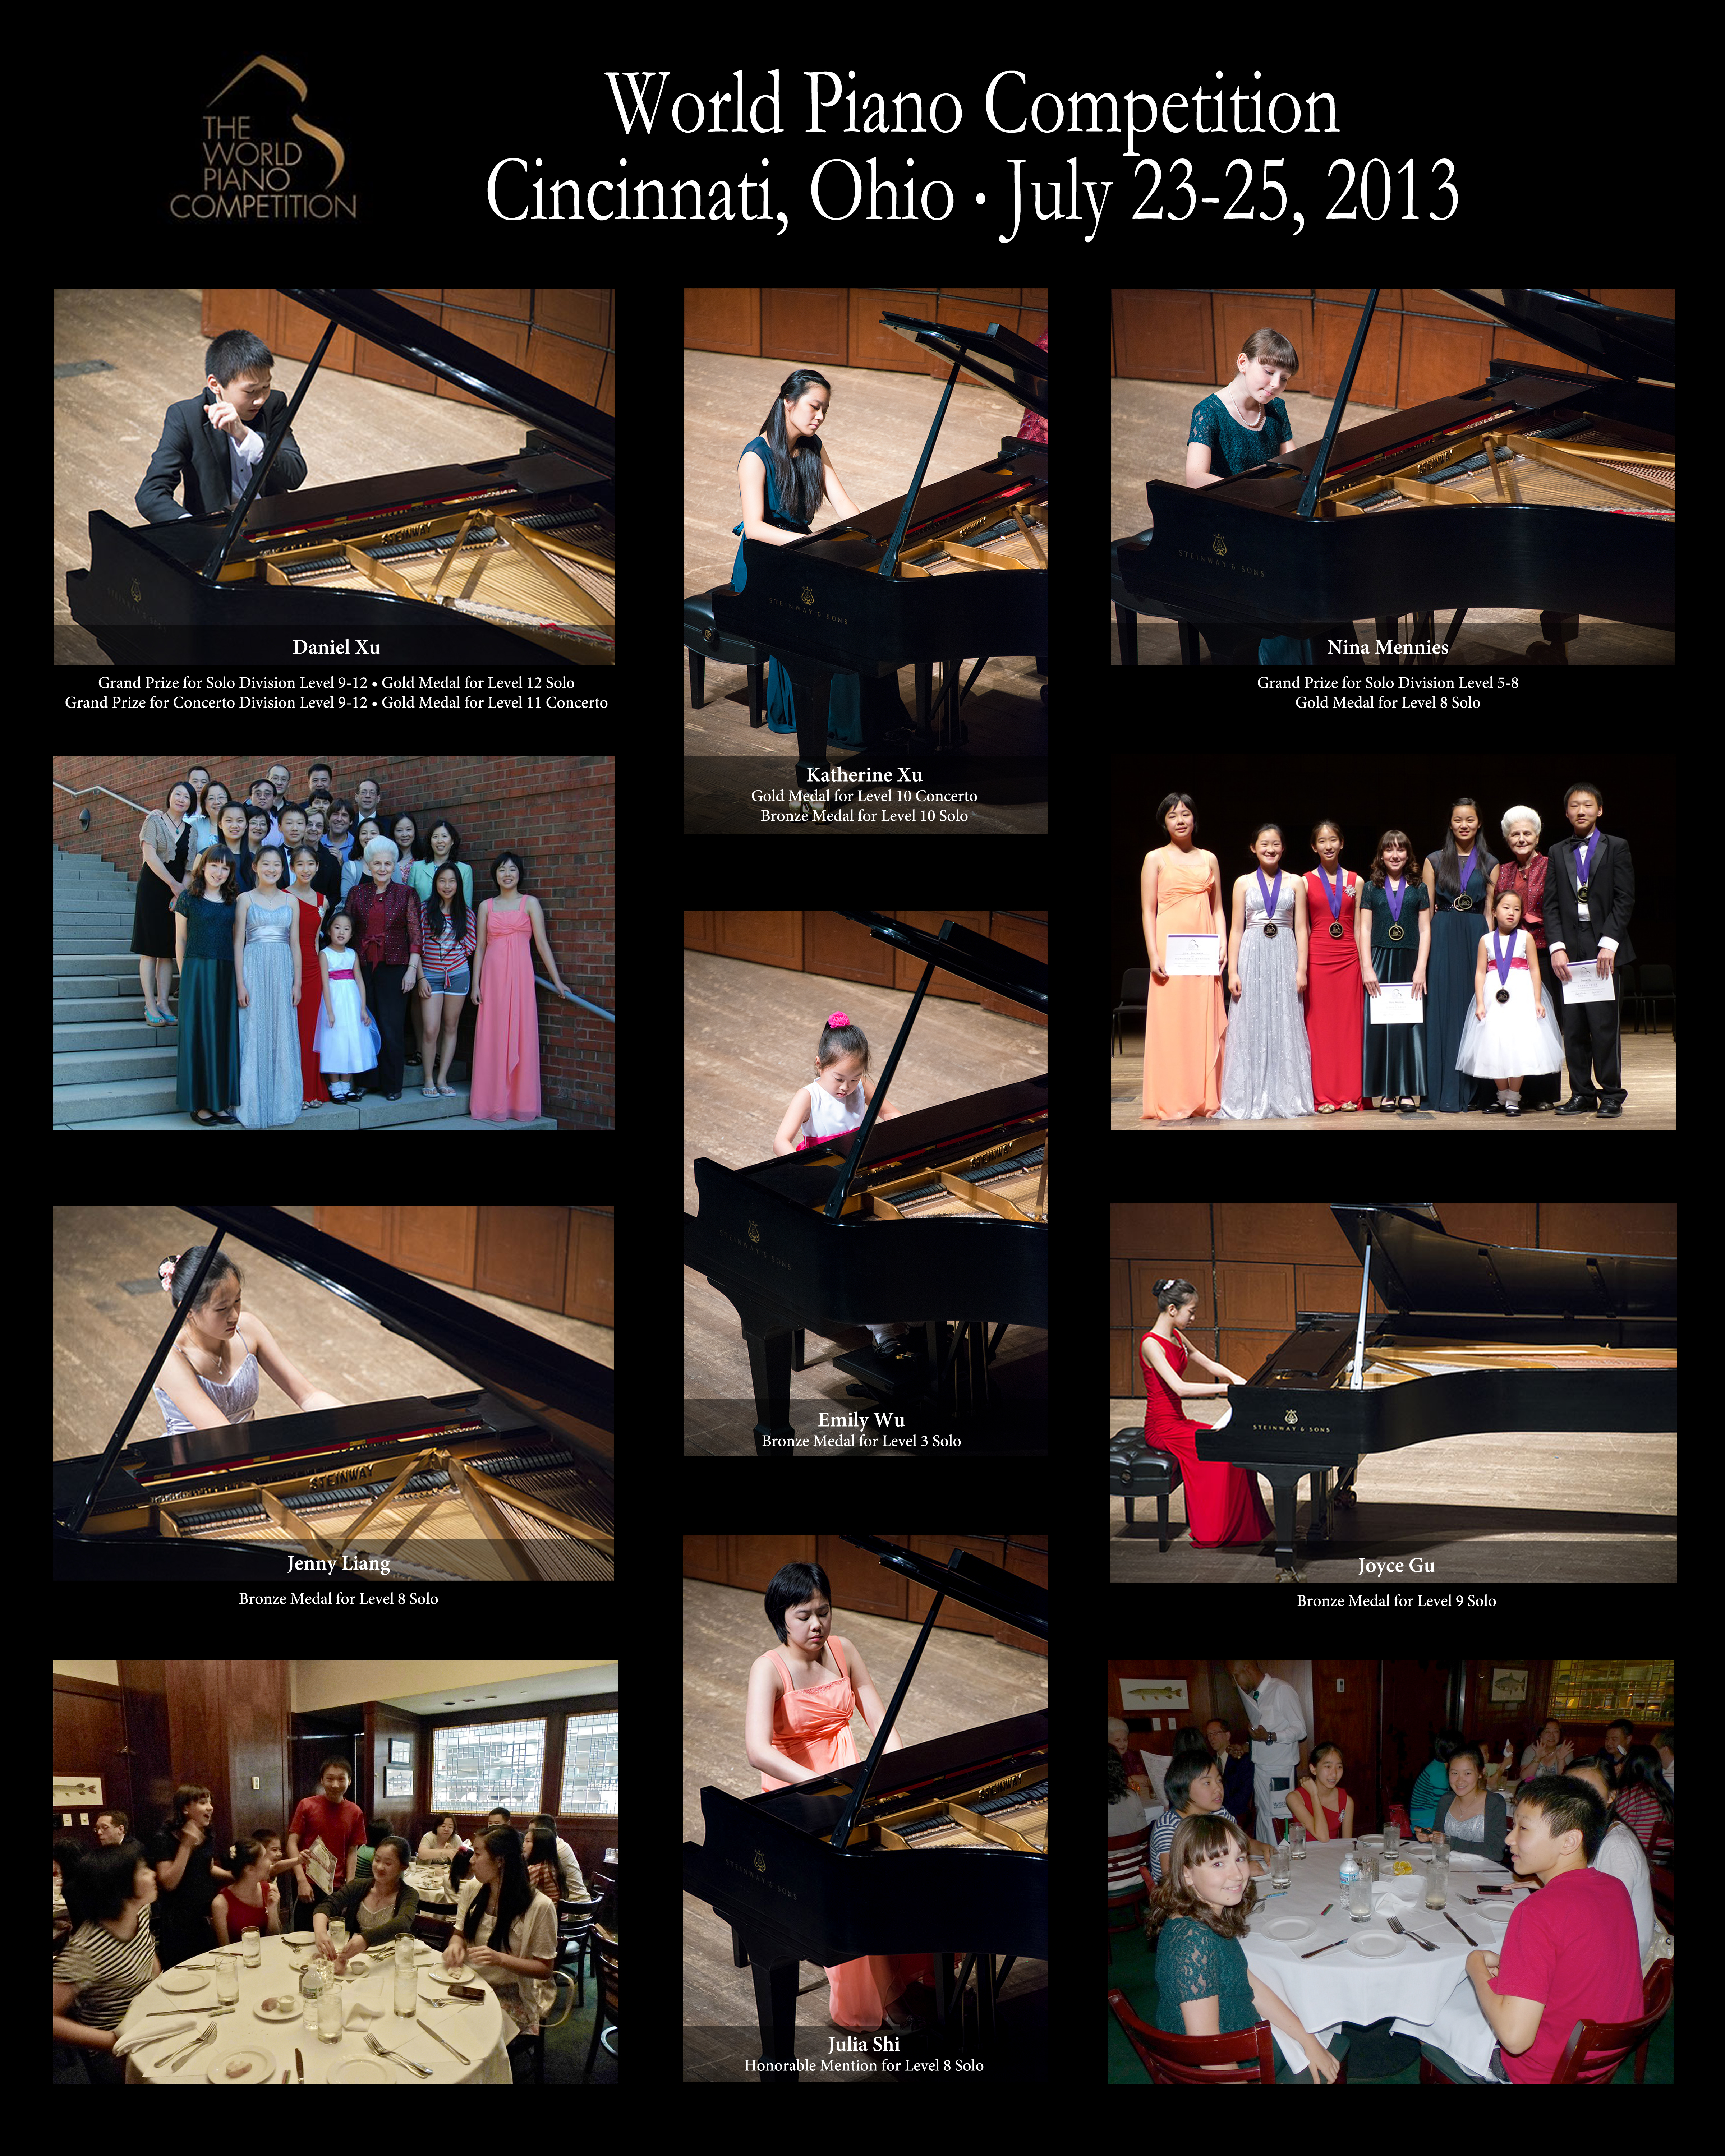 2013 World Piano Competition